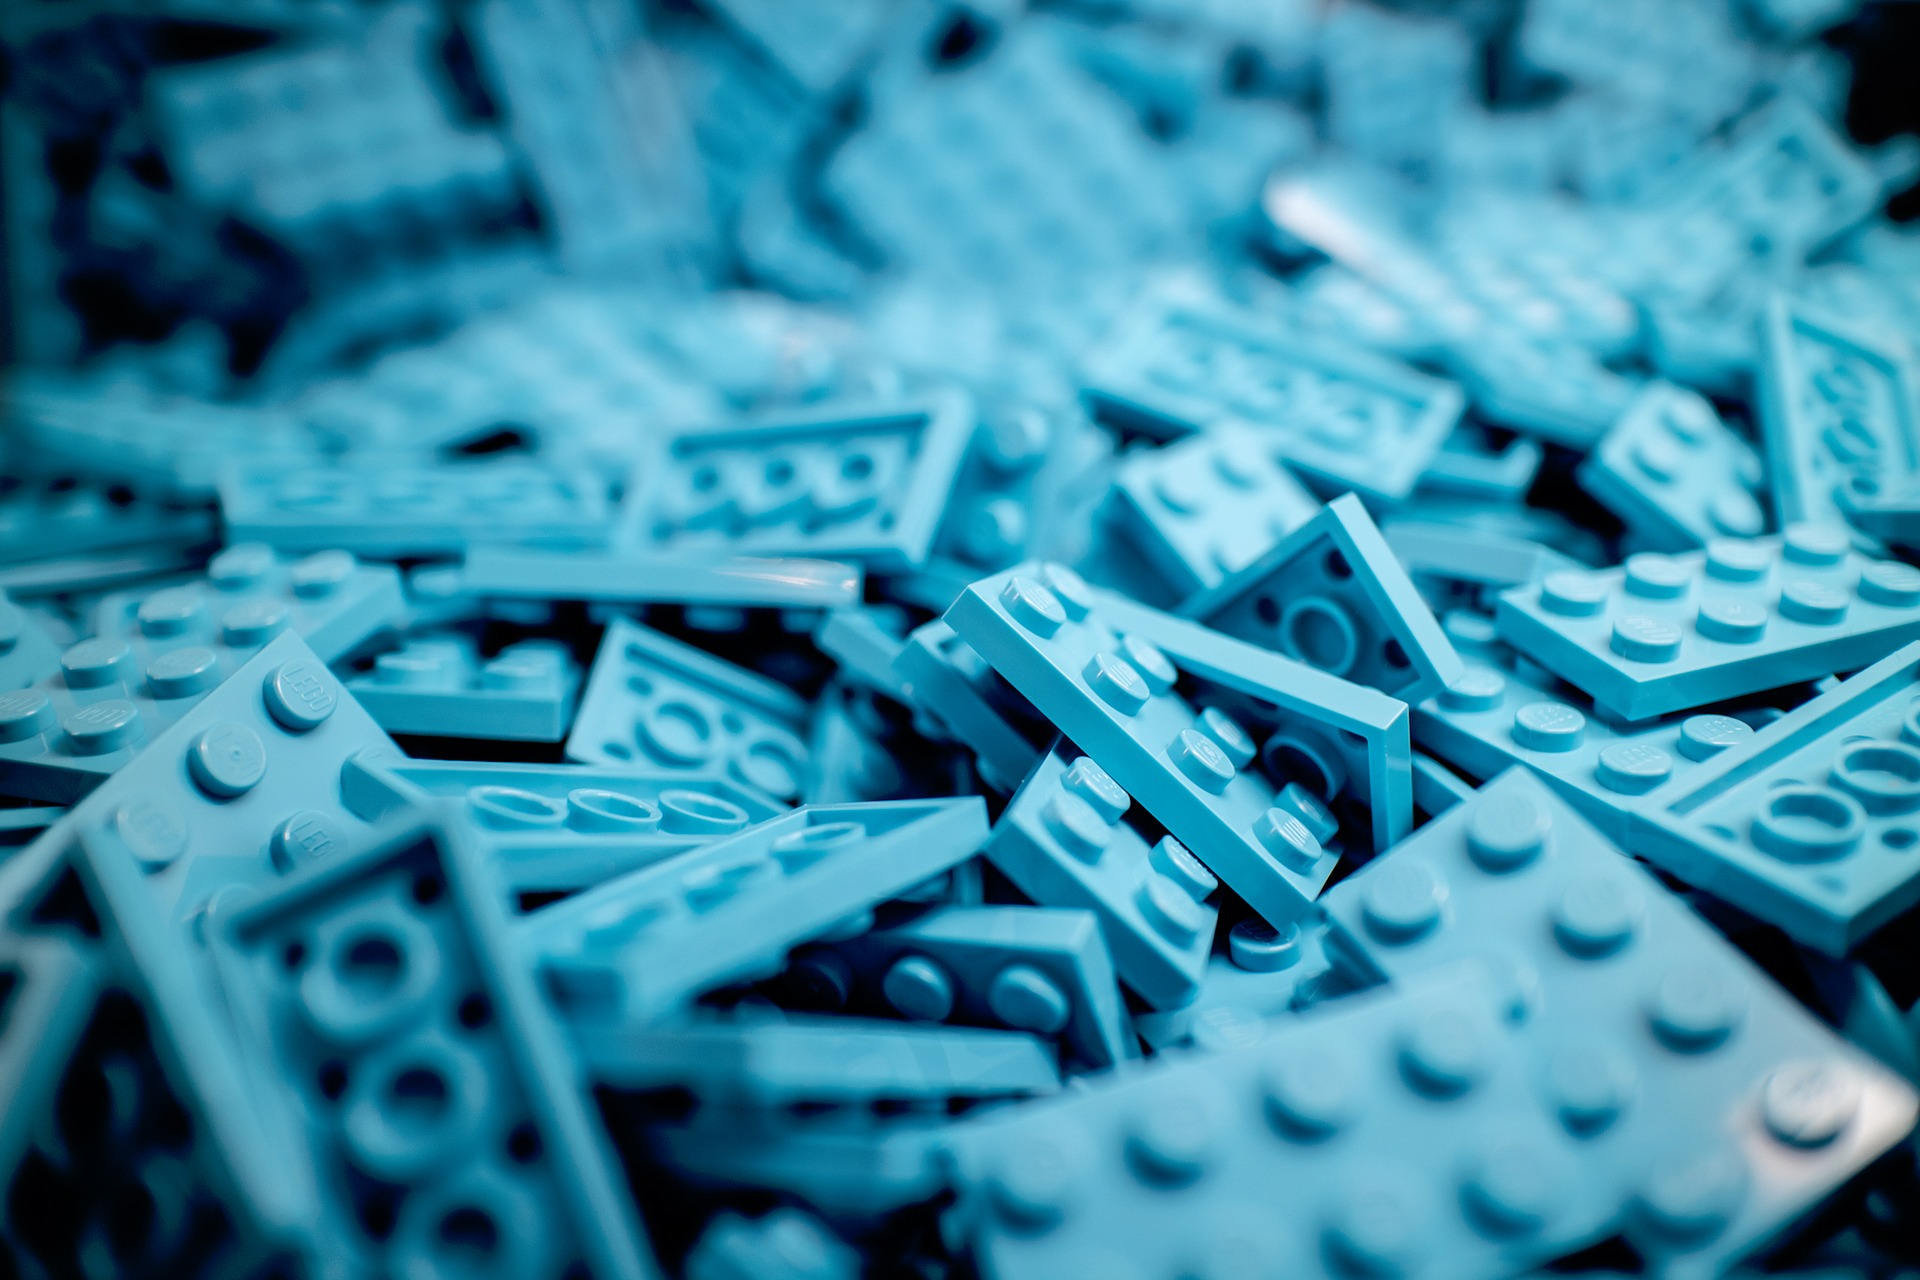 Lego: A Solid History to Build Upon